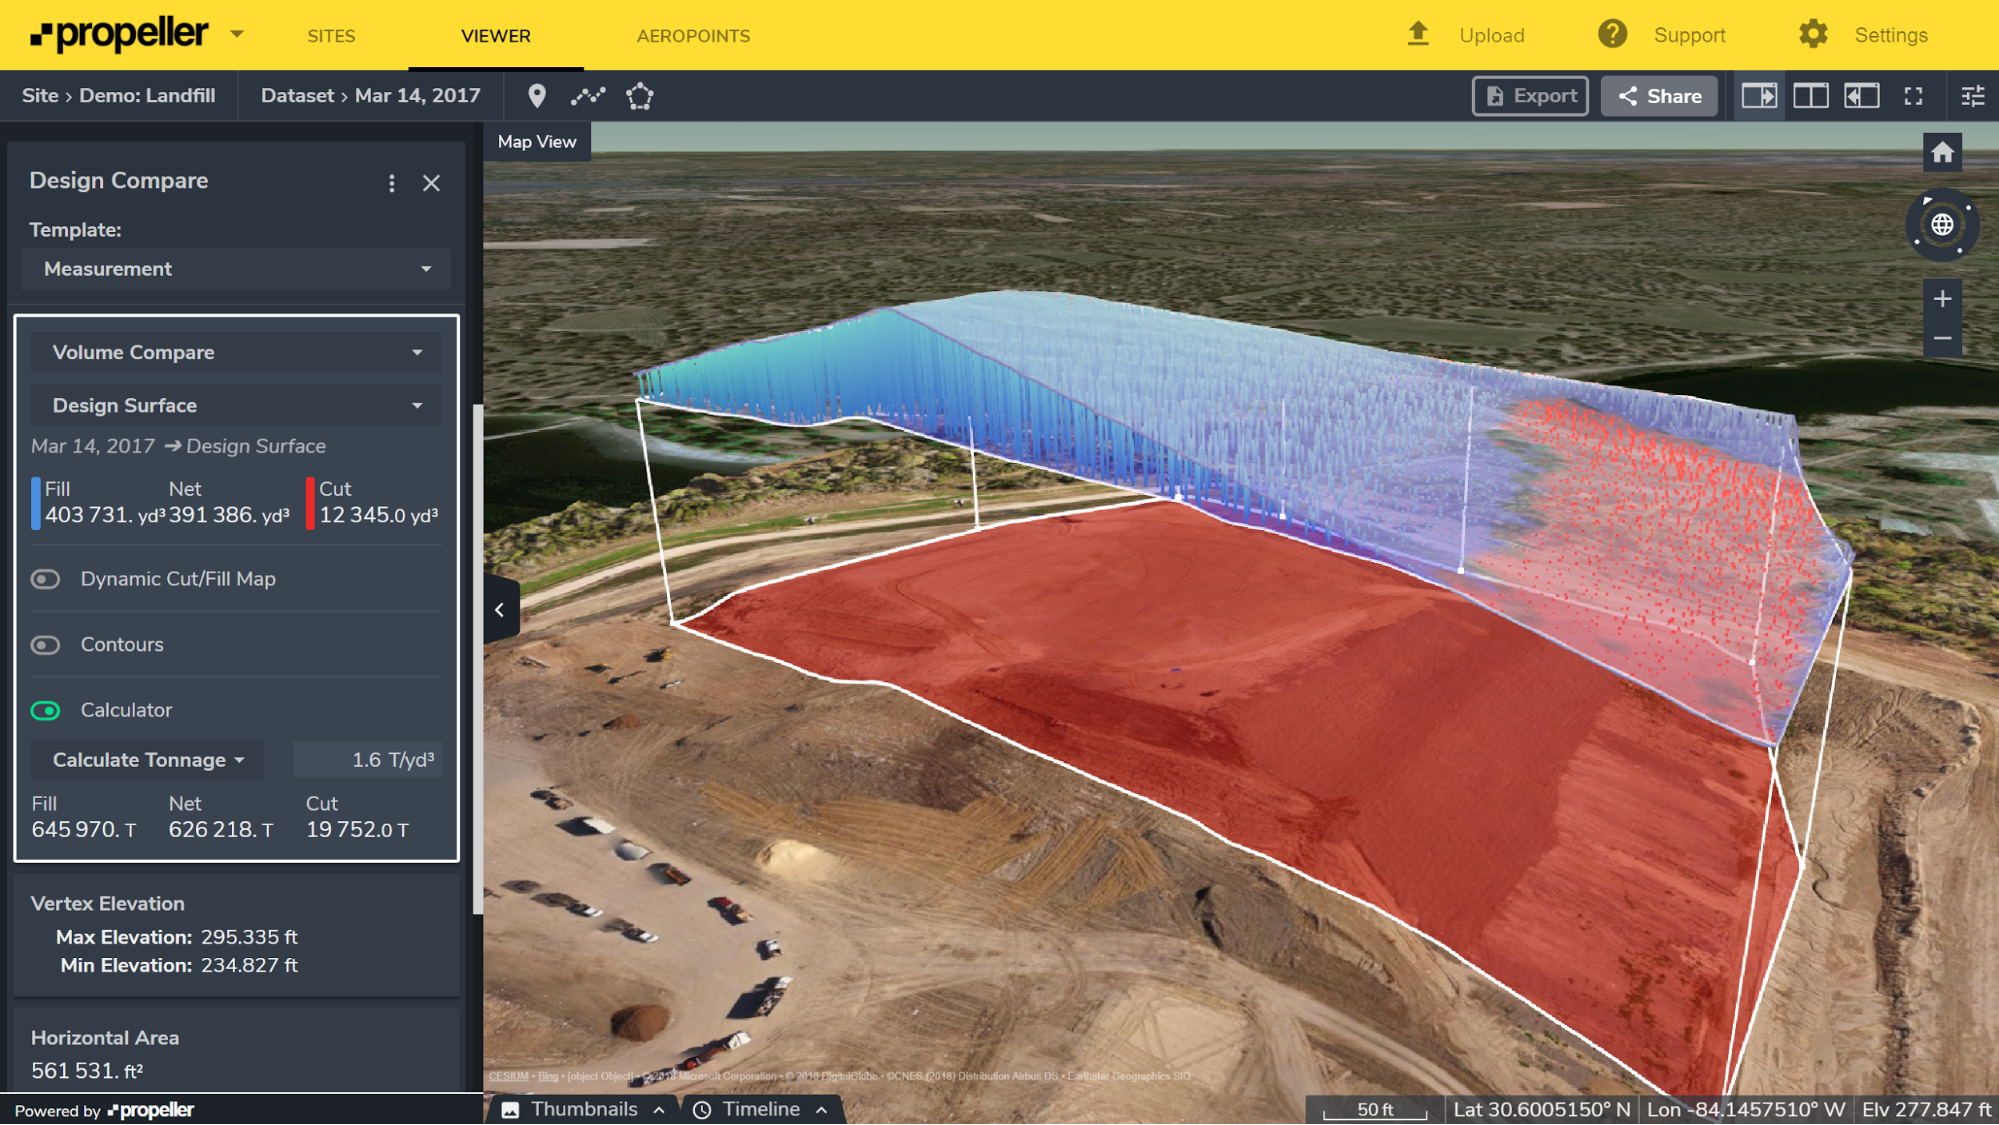 3D visualization of a landfill airspace